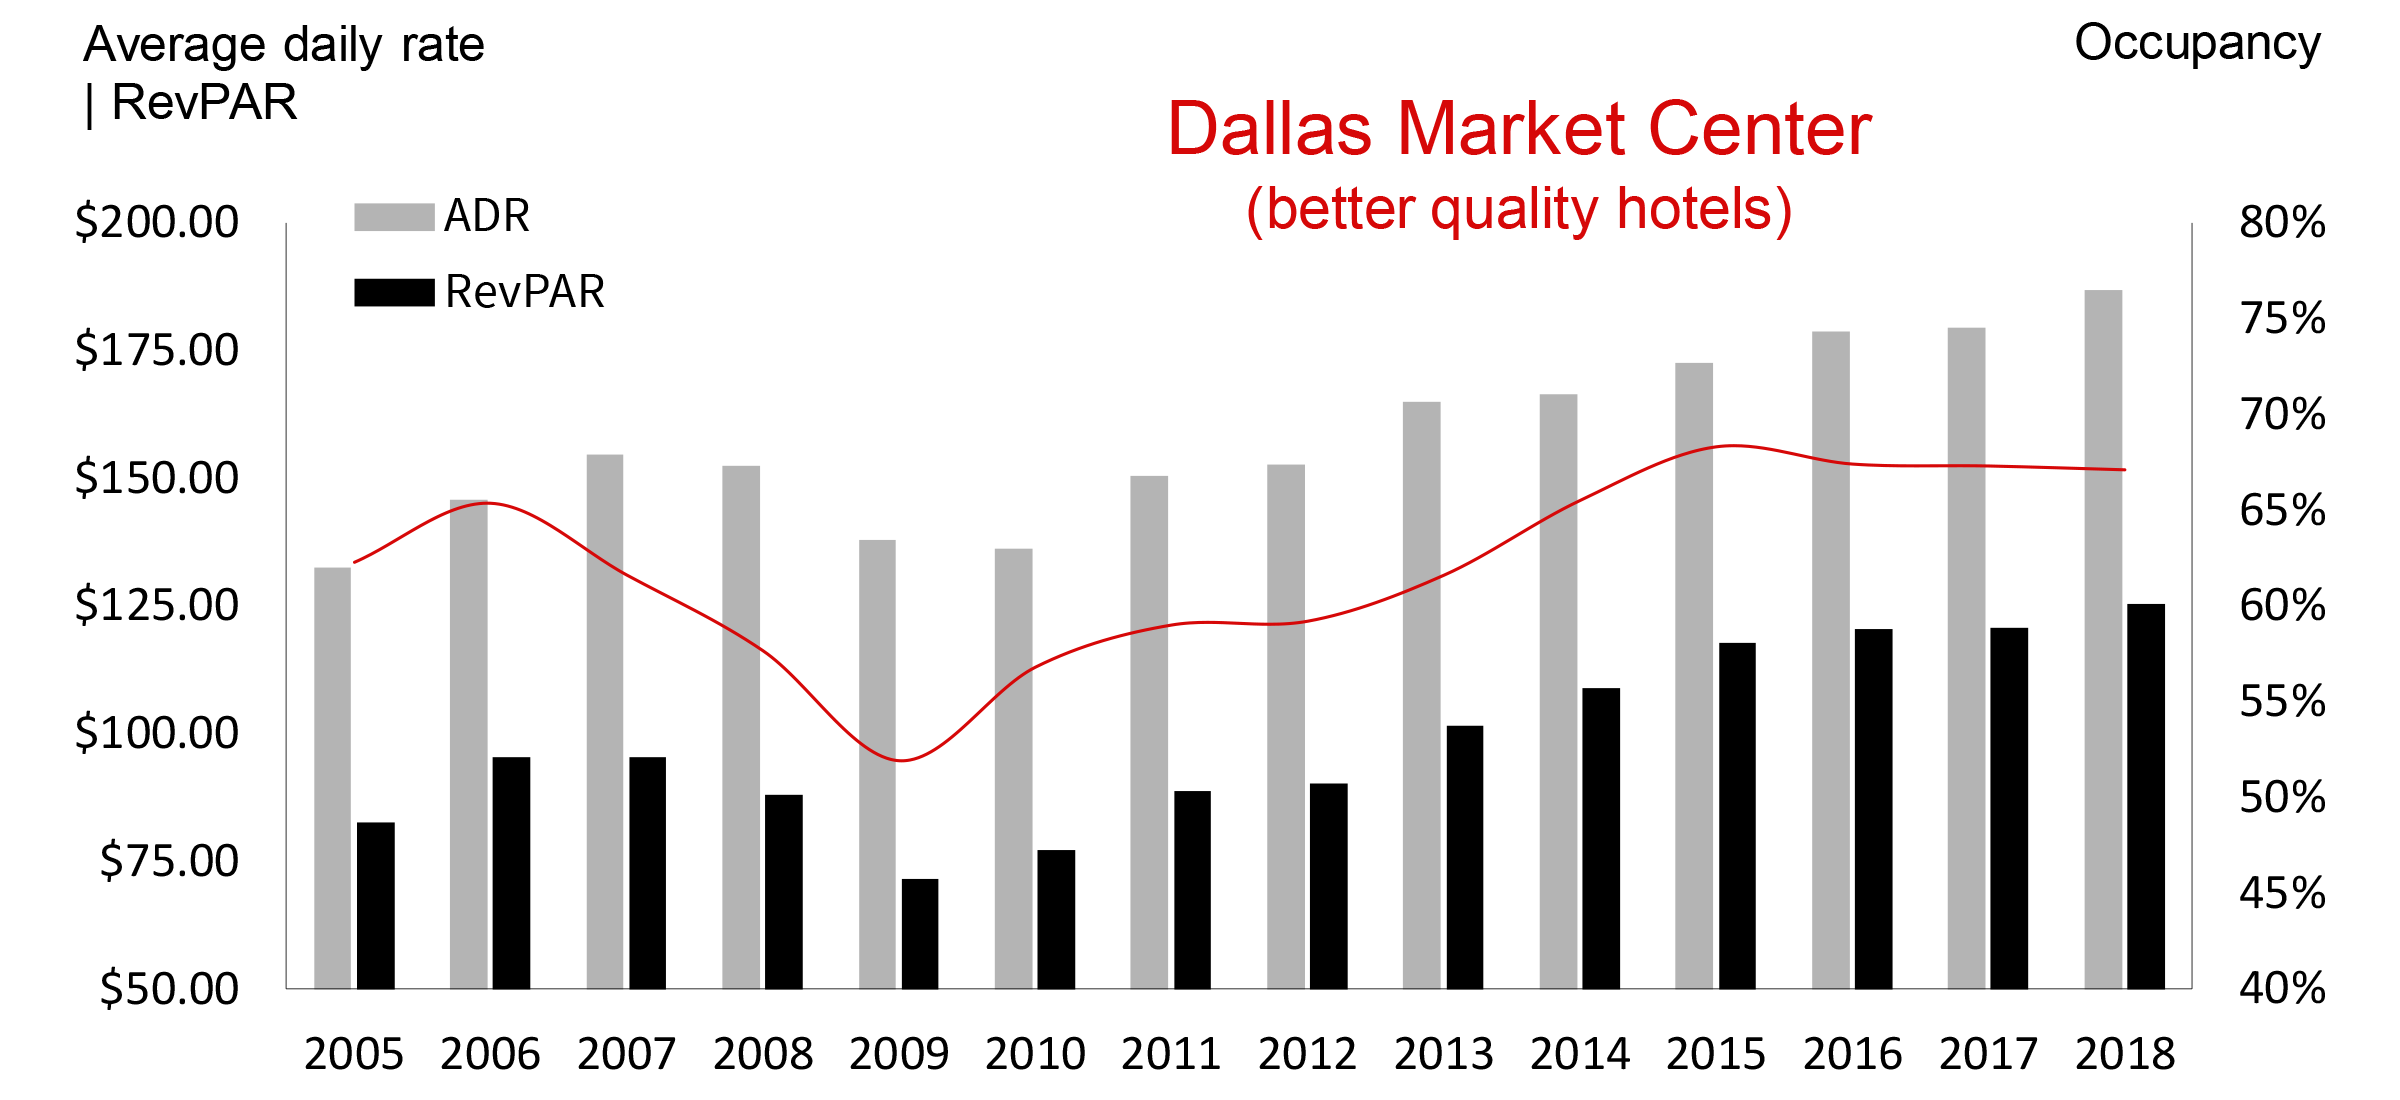 Dallas hotel occupancy…ADR…RePAR… all up and the best they've been in years!